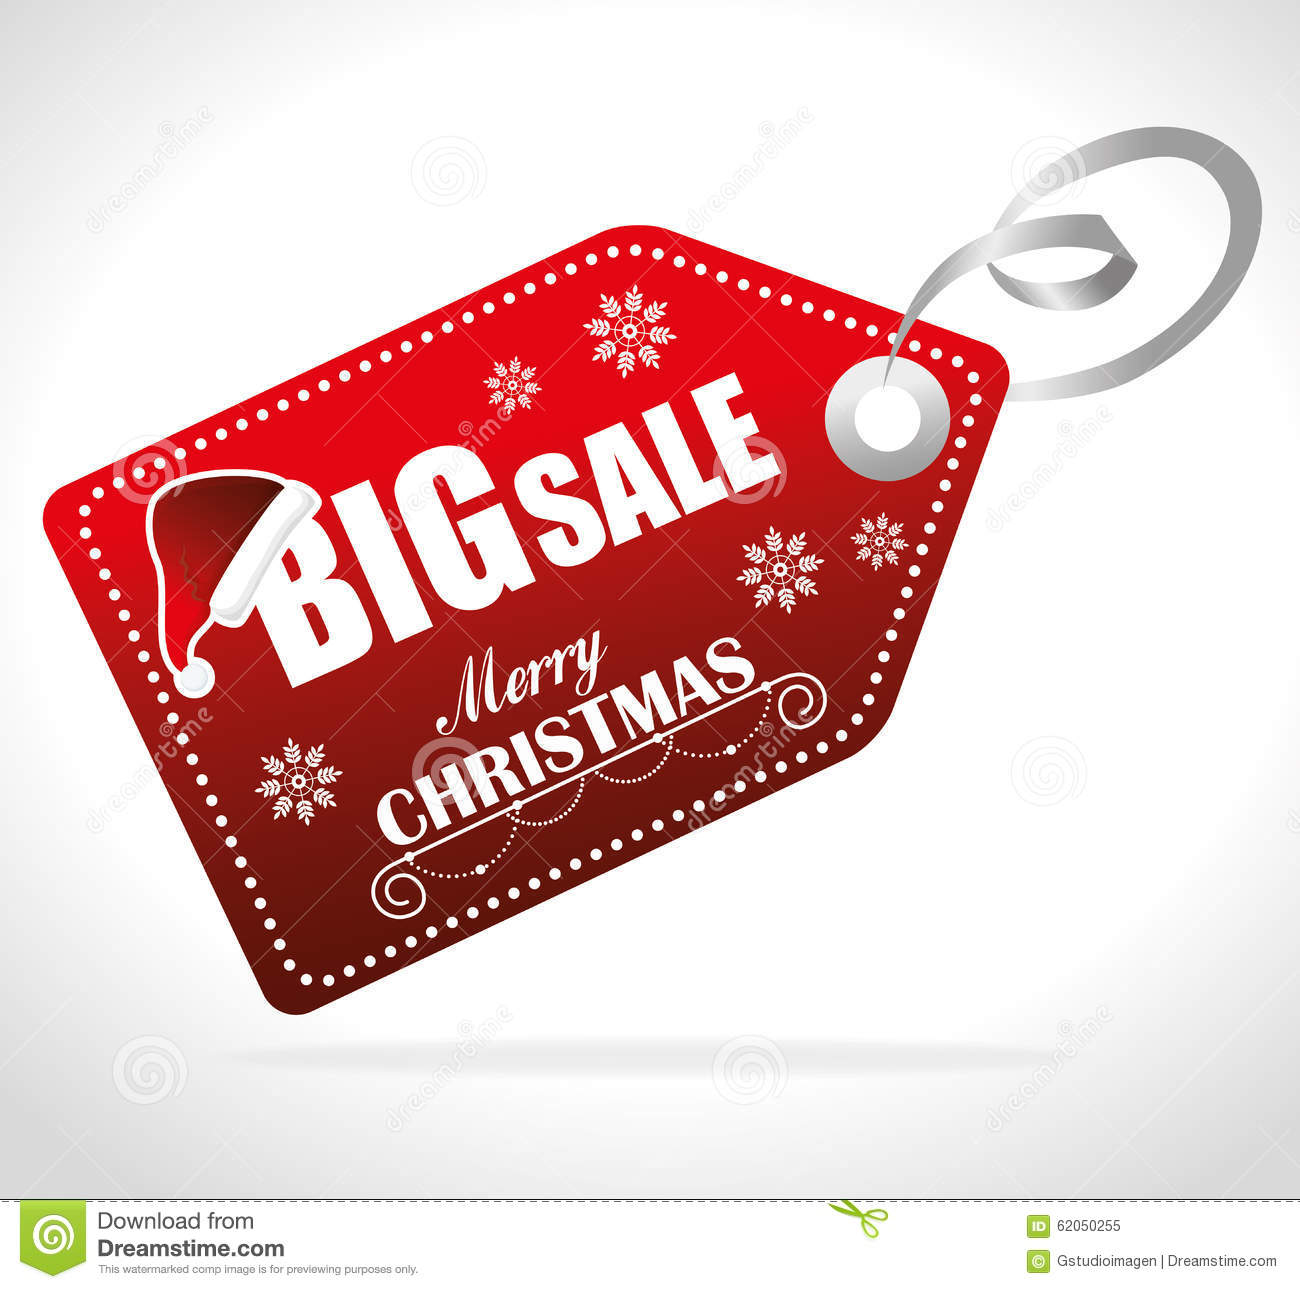 Merry Christmas Shopping Stock Vector - Image: 62050255